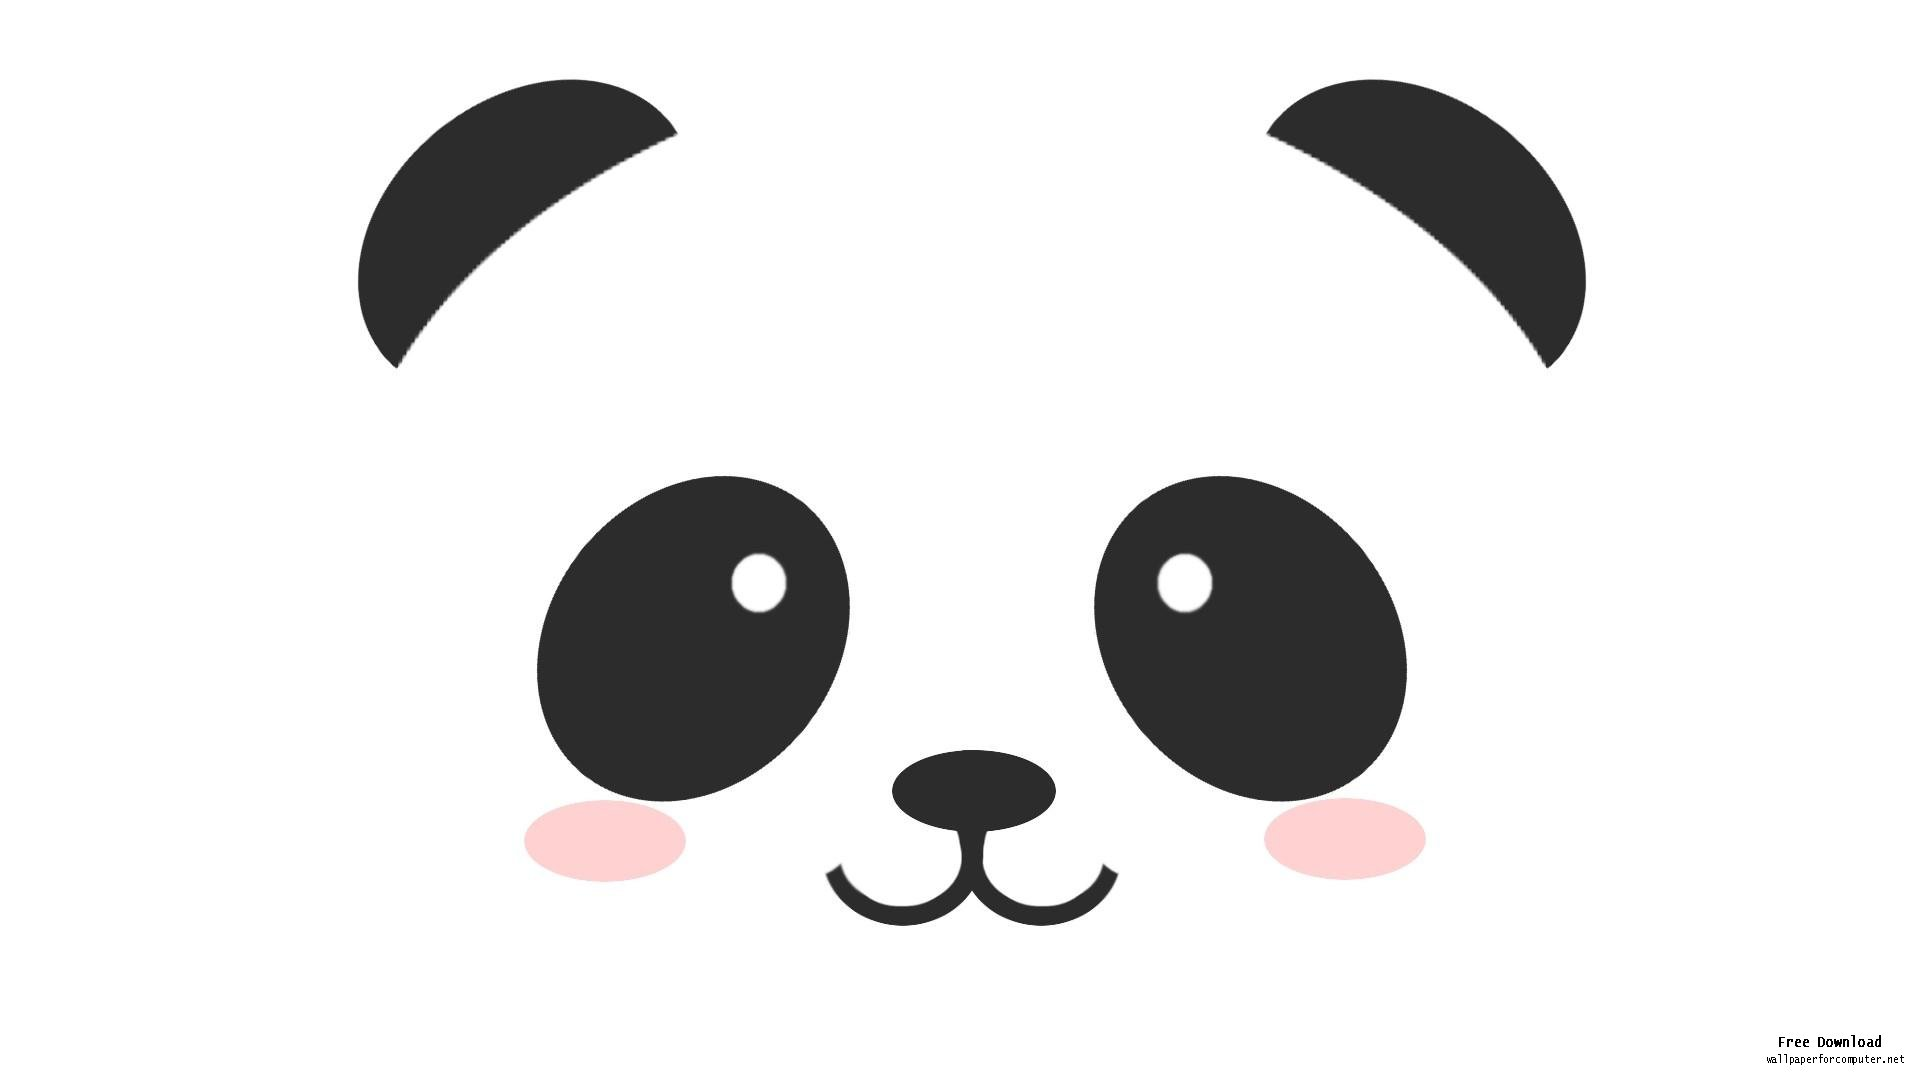 Panda head clipart free images 3.